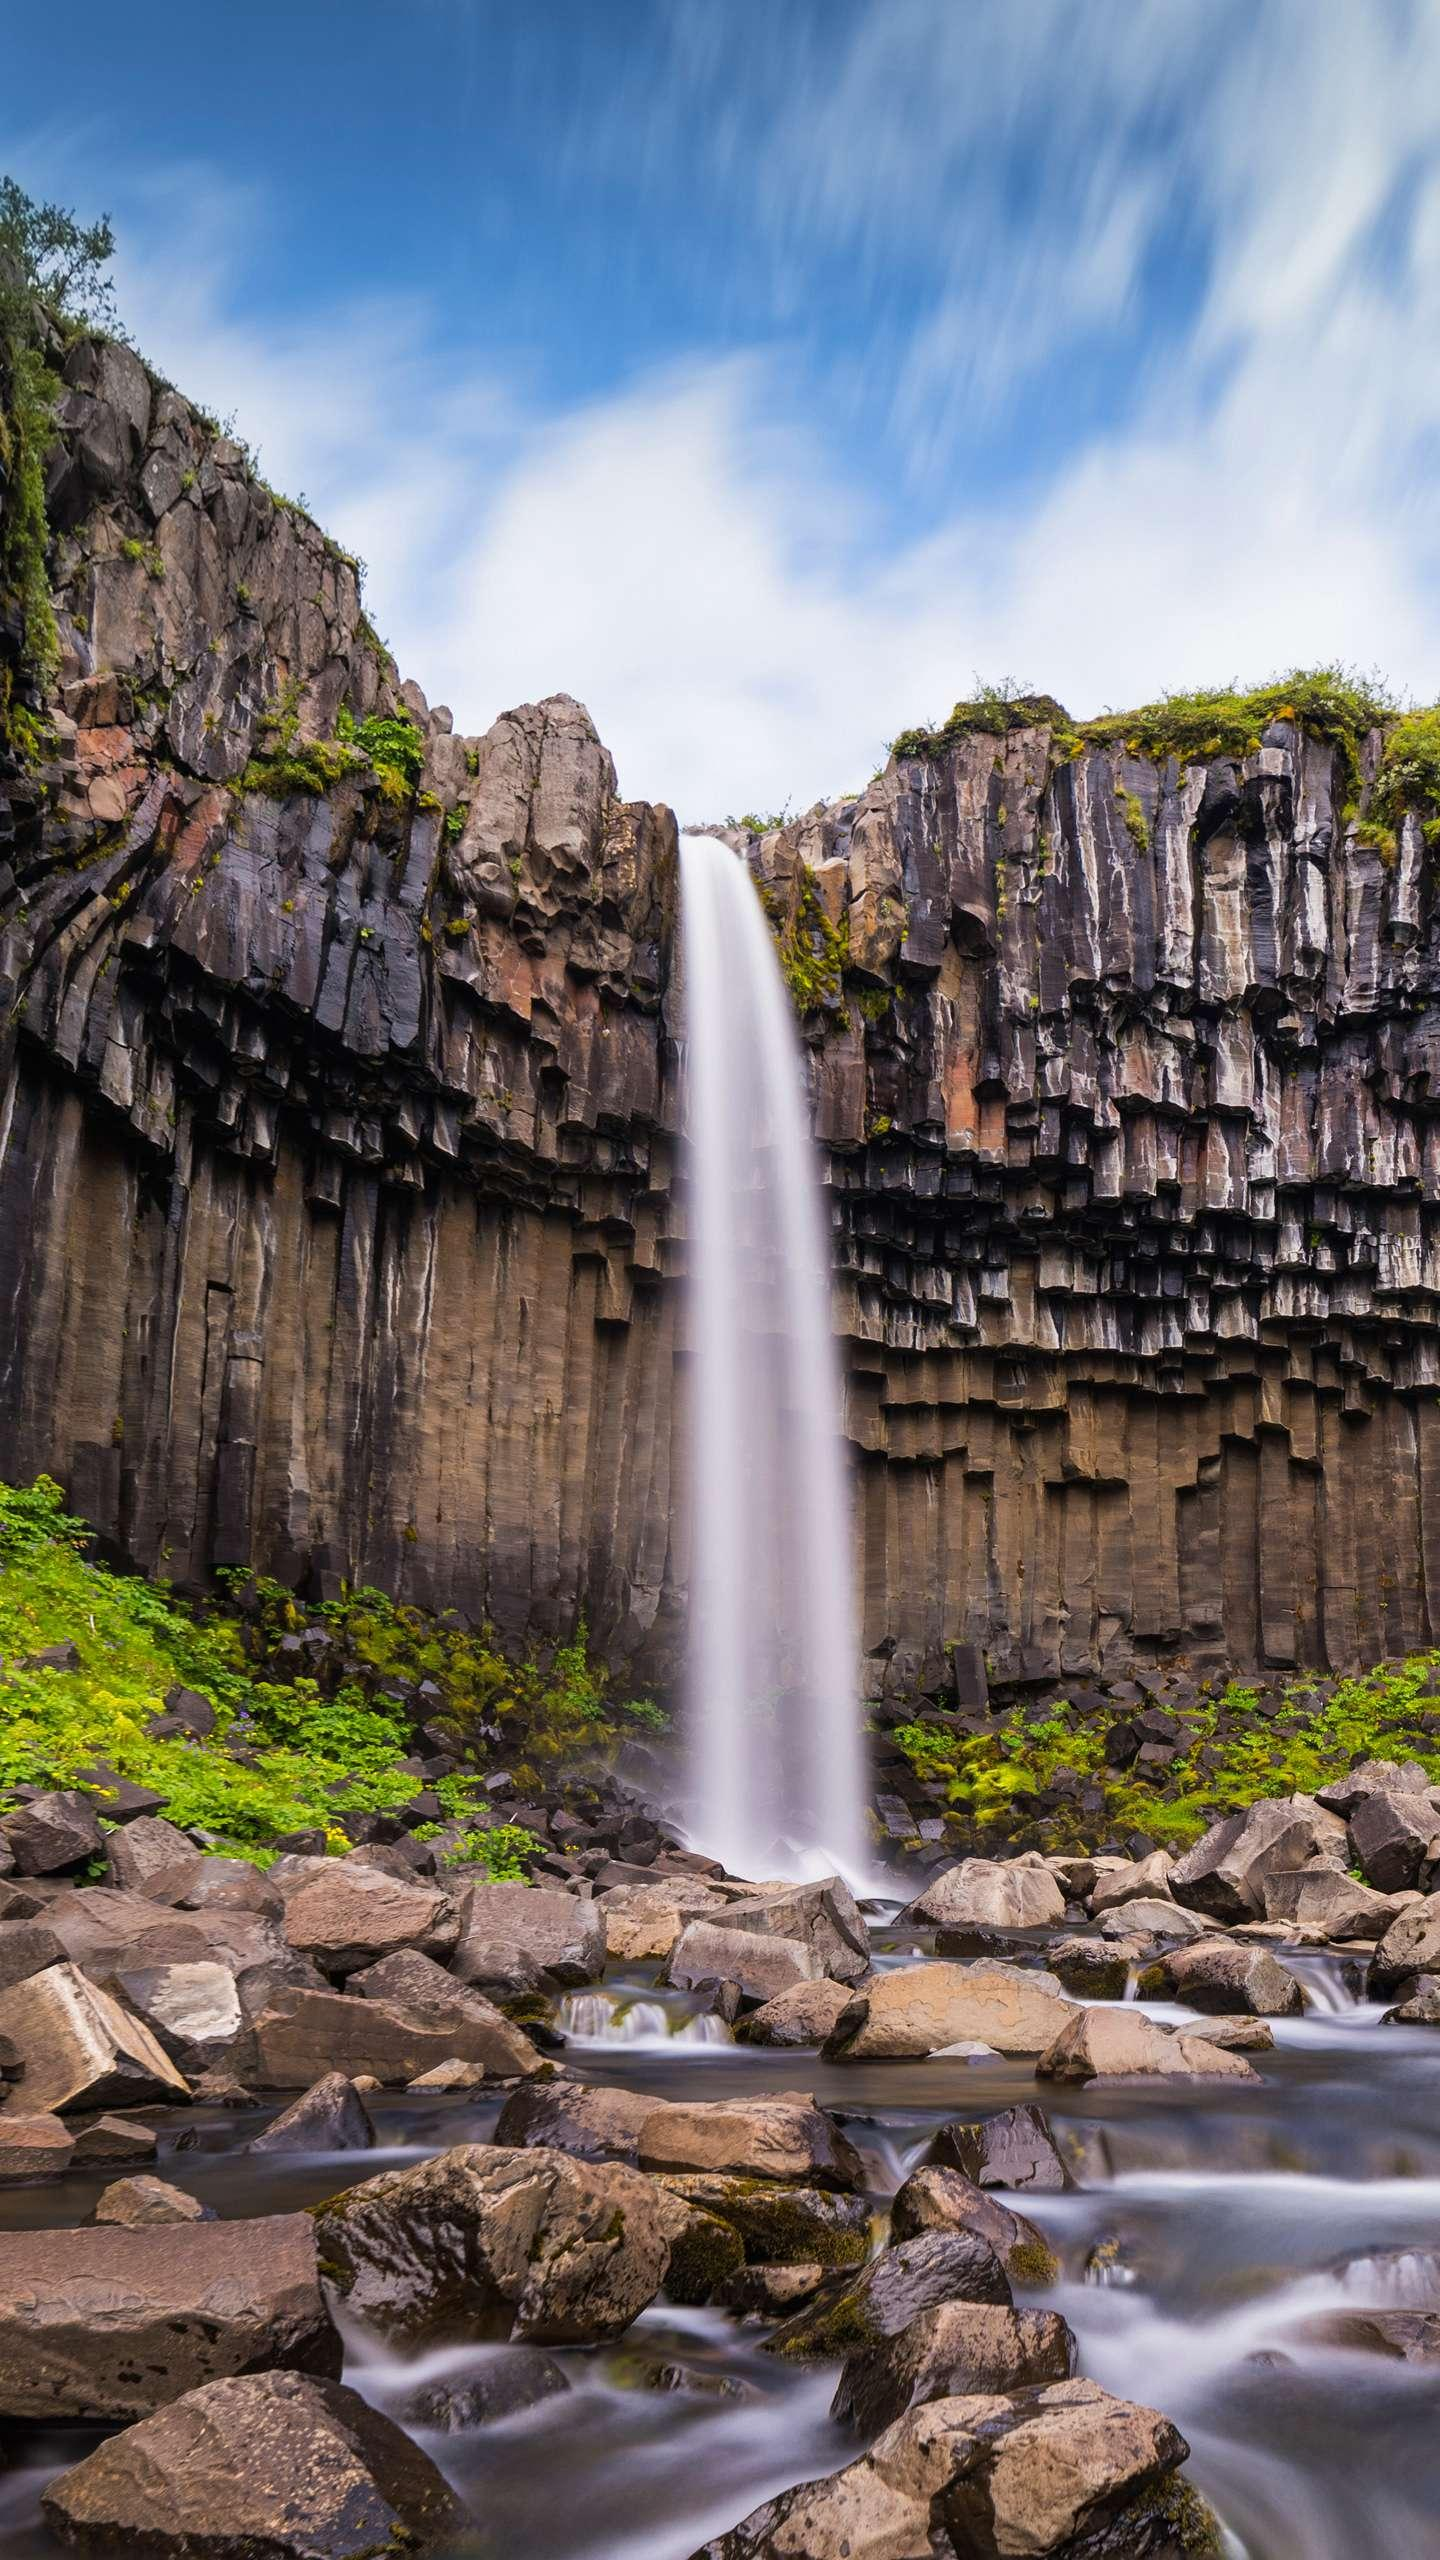 One of the most beautiful waterfalls in Iceland. One of the most unforgettable sights to visit Iceland is the beautiful waterfalls of Iceland.